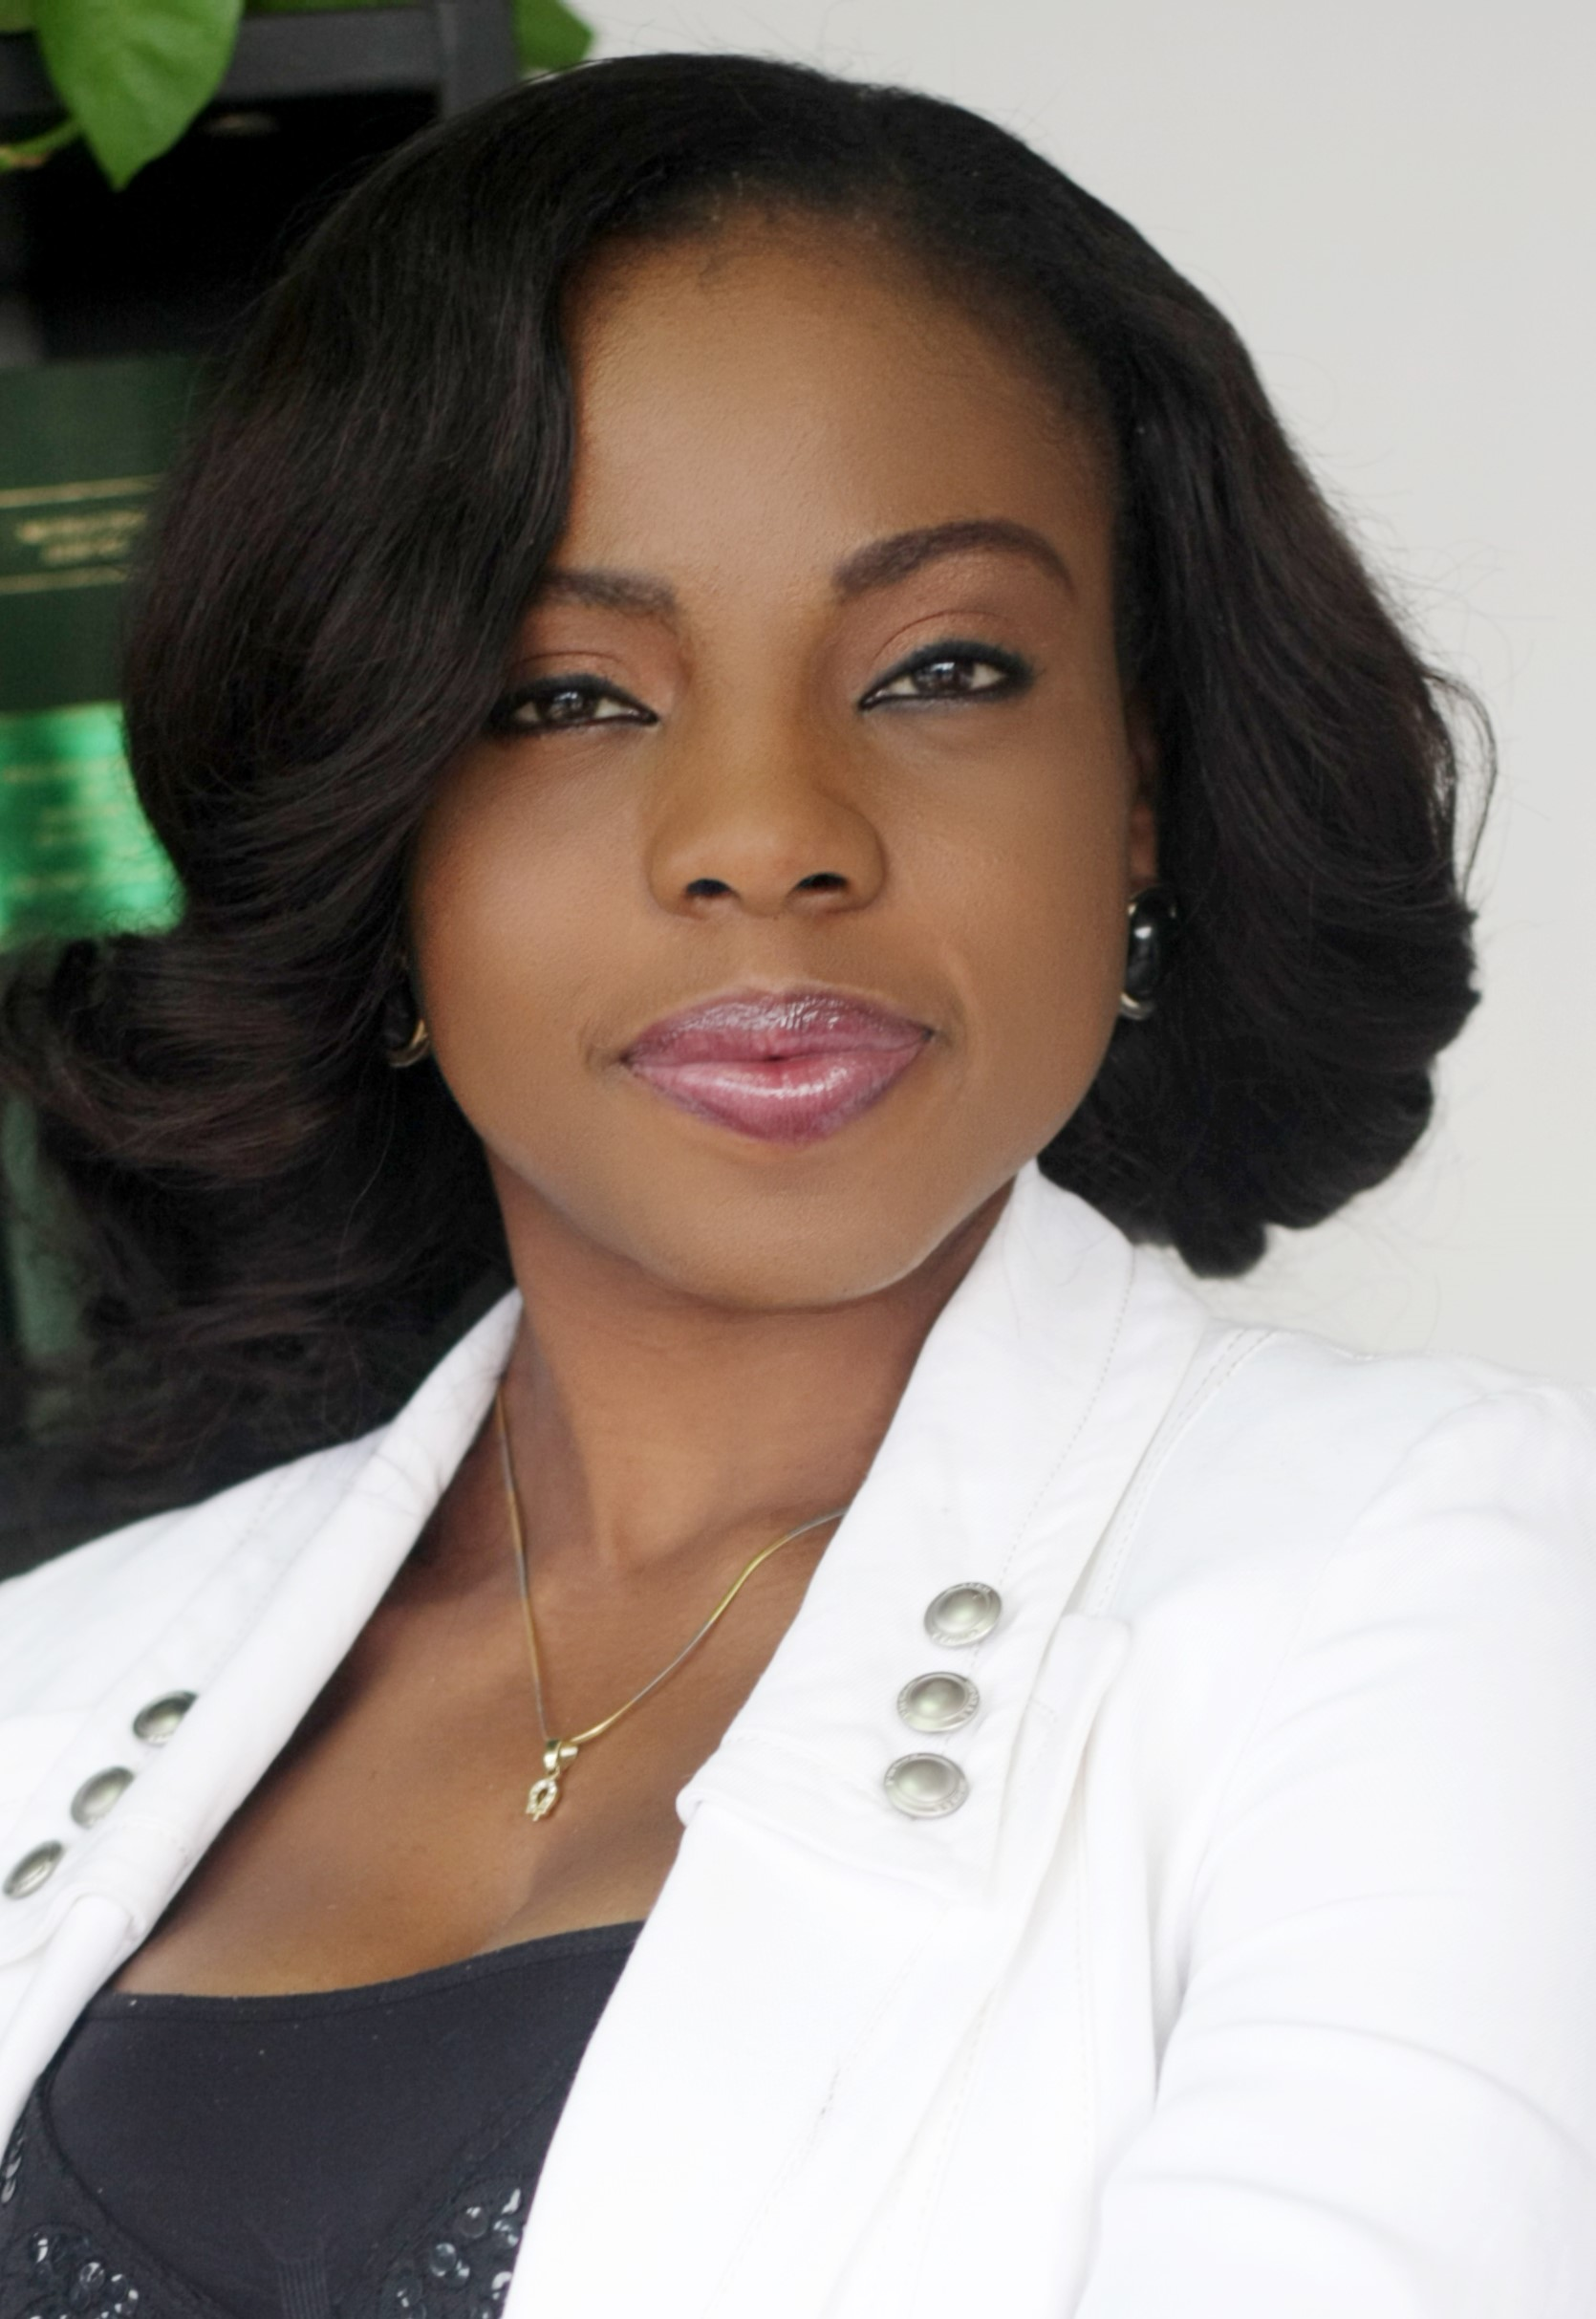 DAISY UDENYI YUSUF, LLB, BL  Vice President/Chief Operating Officer, Siloan Medical Centre, Lagos, Nigeria